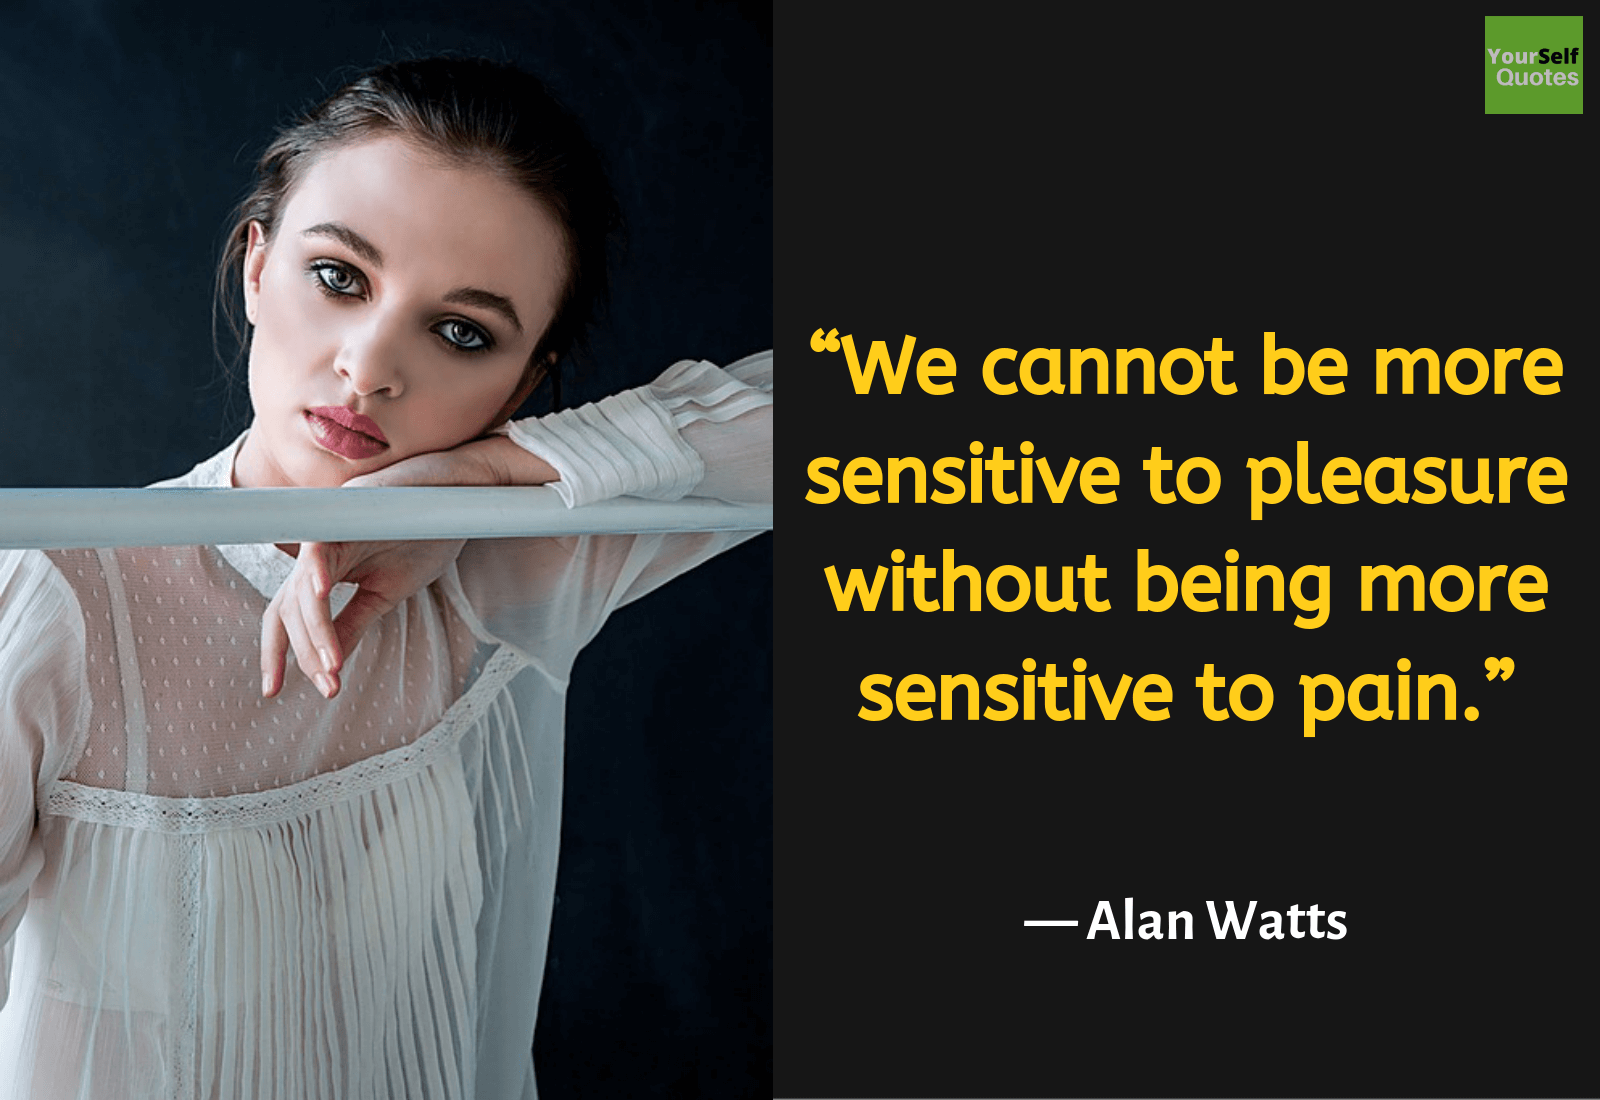 Mental Health Quotes by Alan Watts